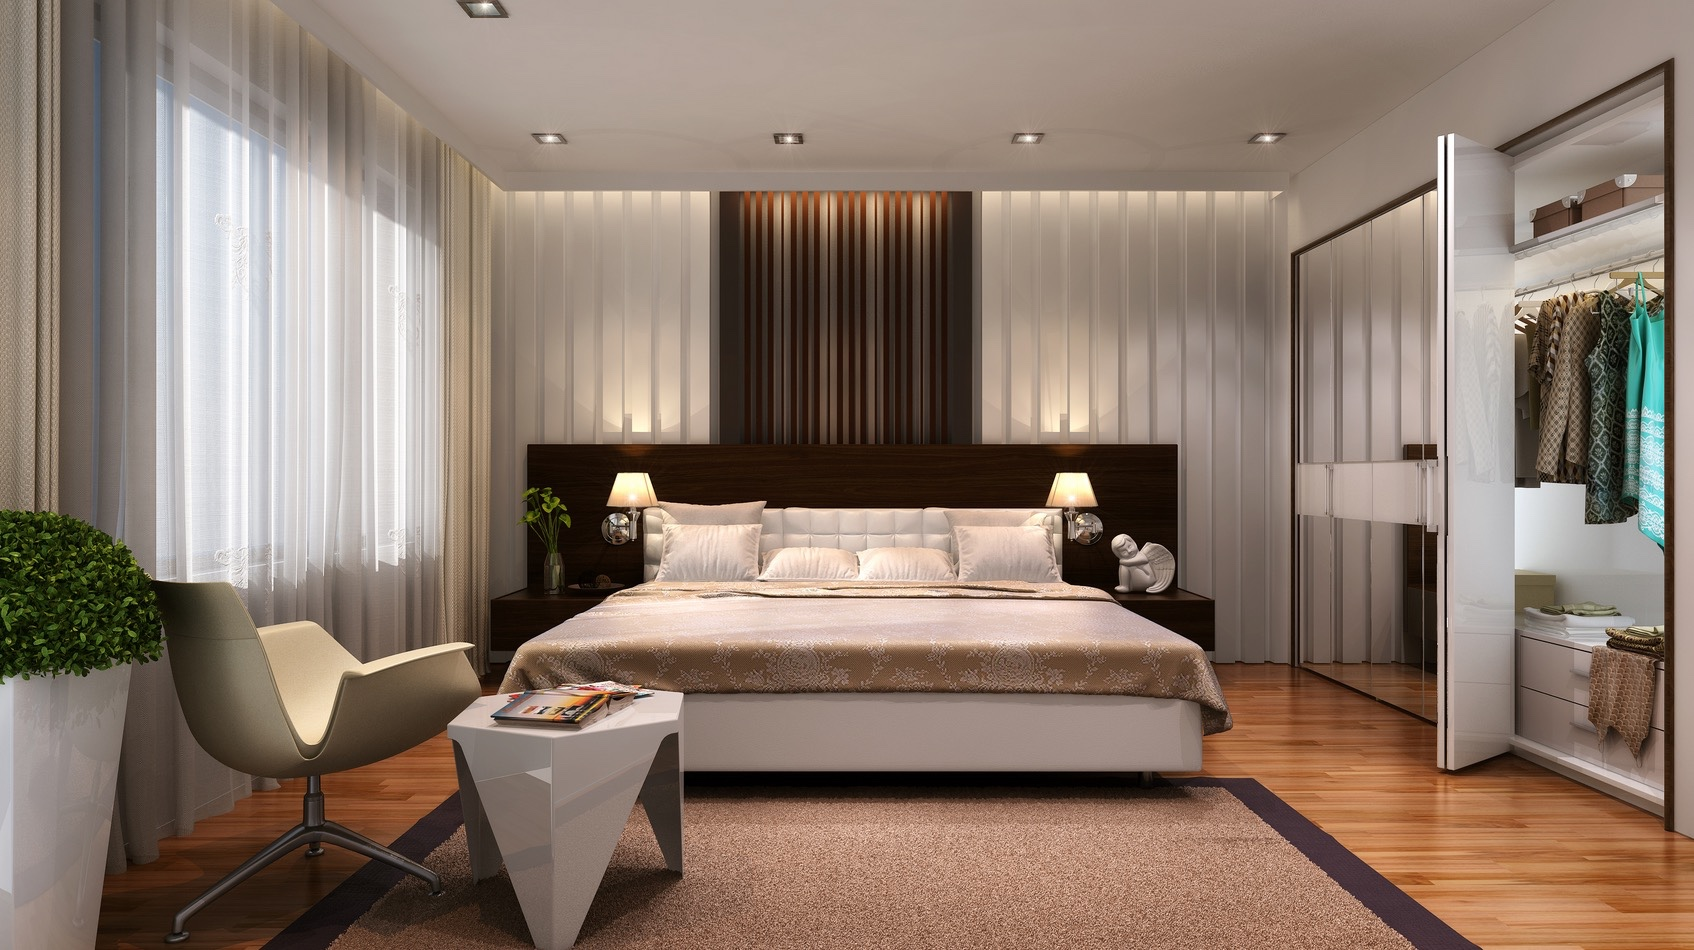 21 cool bedrooms for clean and simple design inspiration Bedroom design